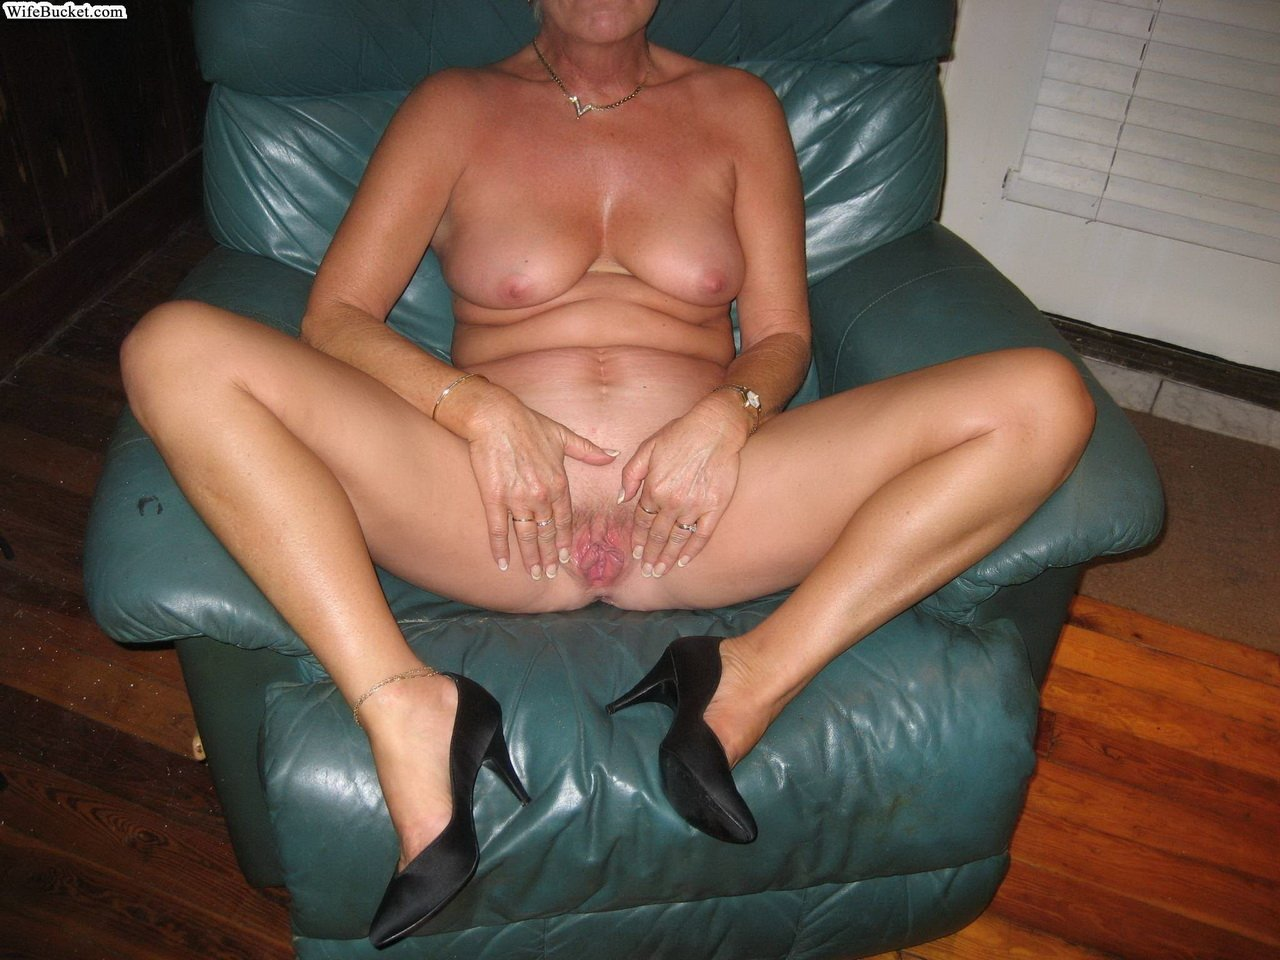 Cuckold bbc trainer Story mothe add photo